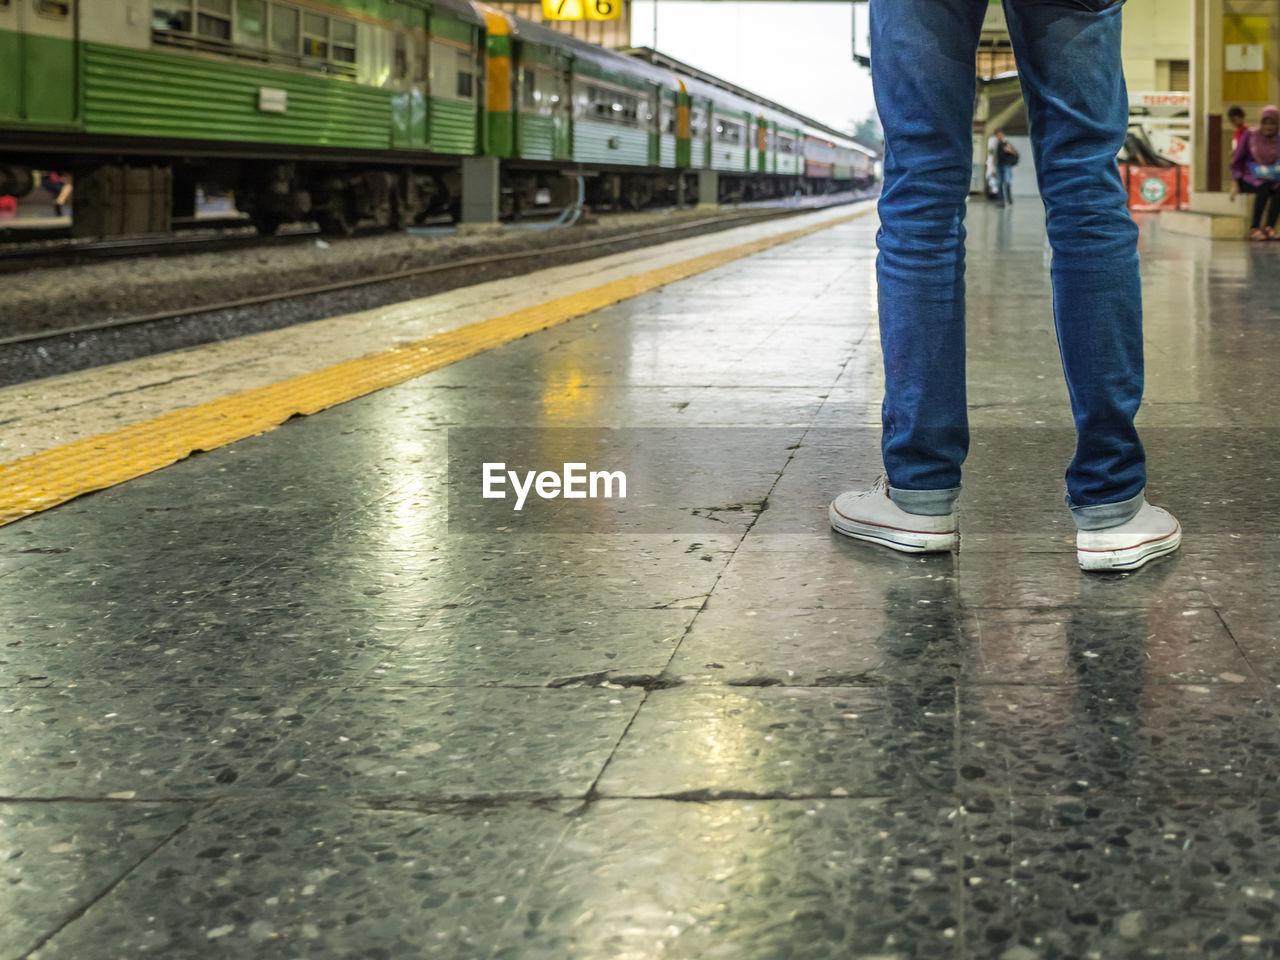 low section, transportation, rail transportation, real people, wet, one person, track, human leg, human body part, mode of transportation, railroad track, shoe, body part, casual clothing, day, standing, jeans, rain, outdoors, rainy season